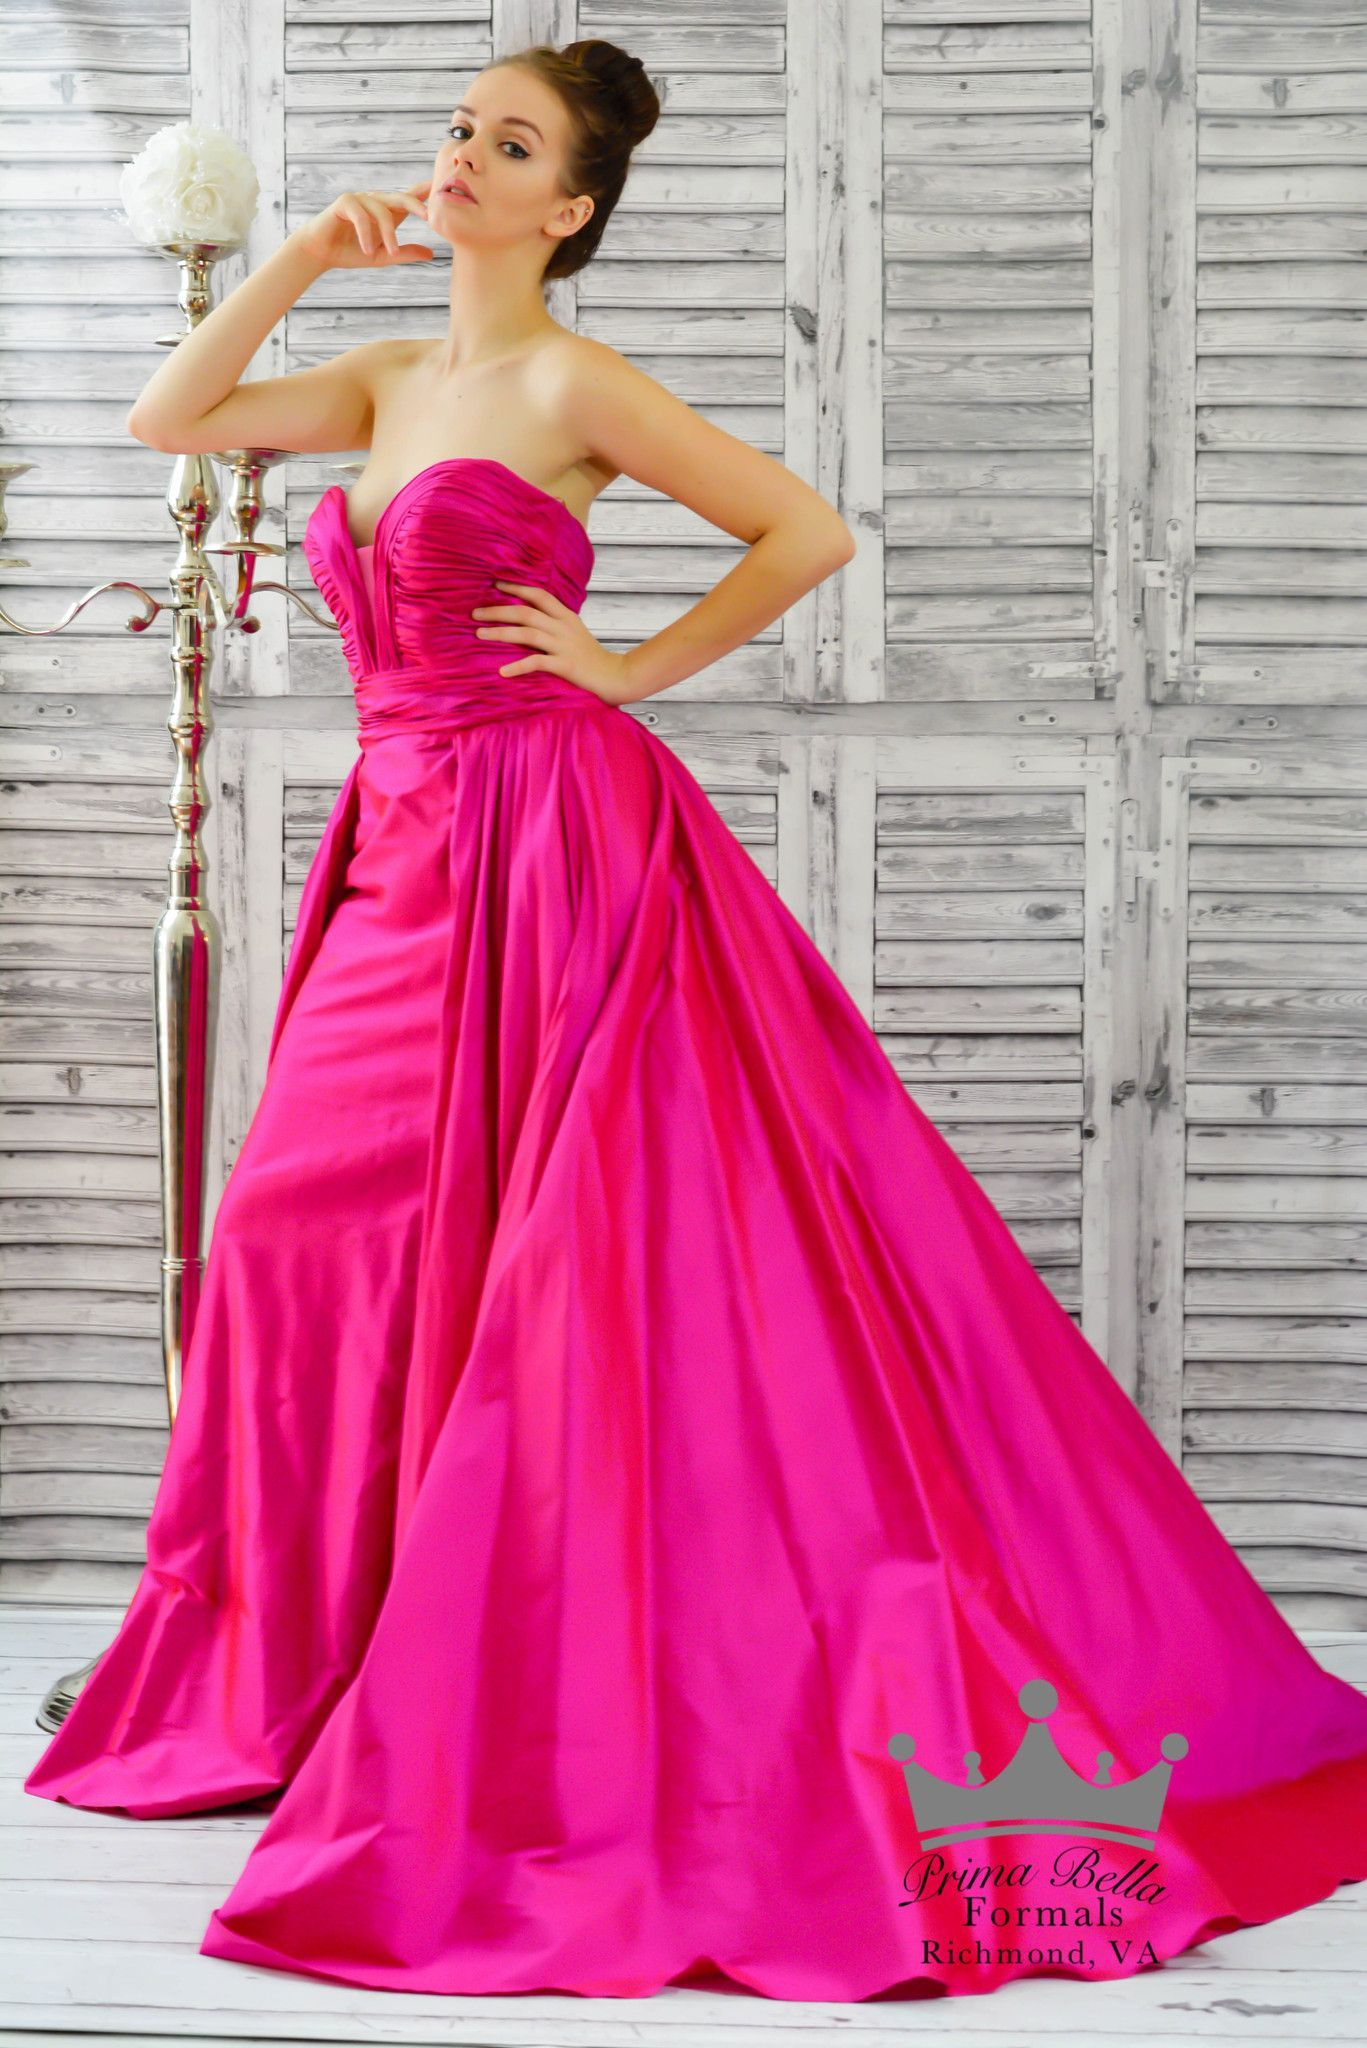 Lujoso Consignment Shops That Buy Prom Dresses Ilustración - Ideas ...